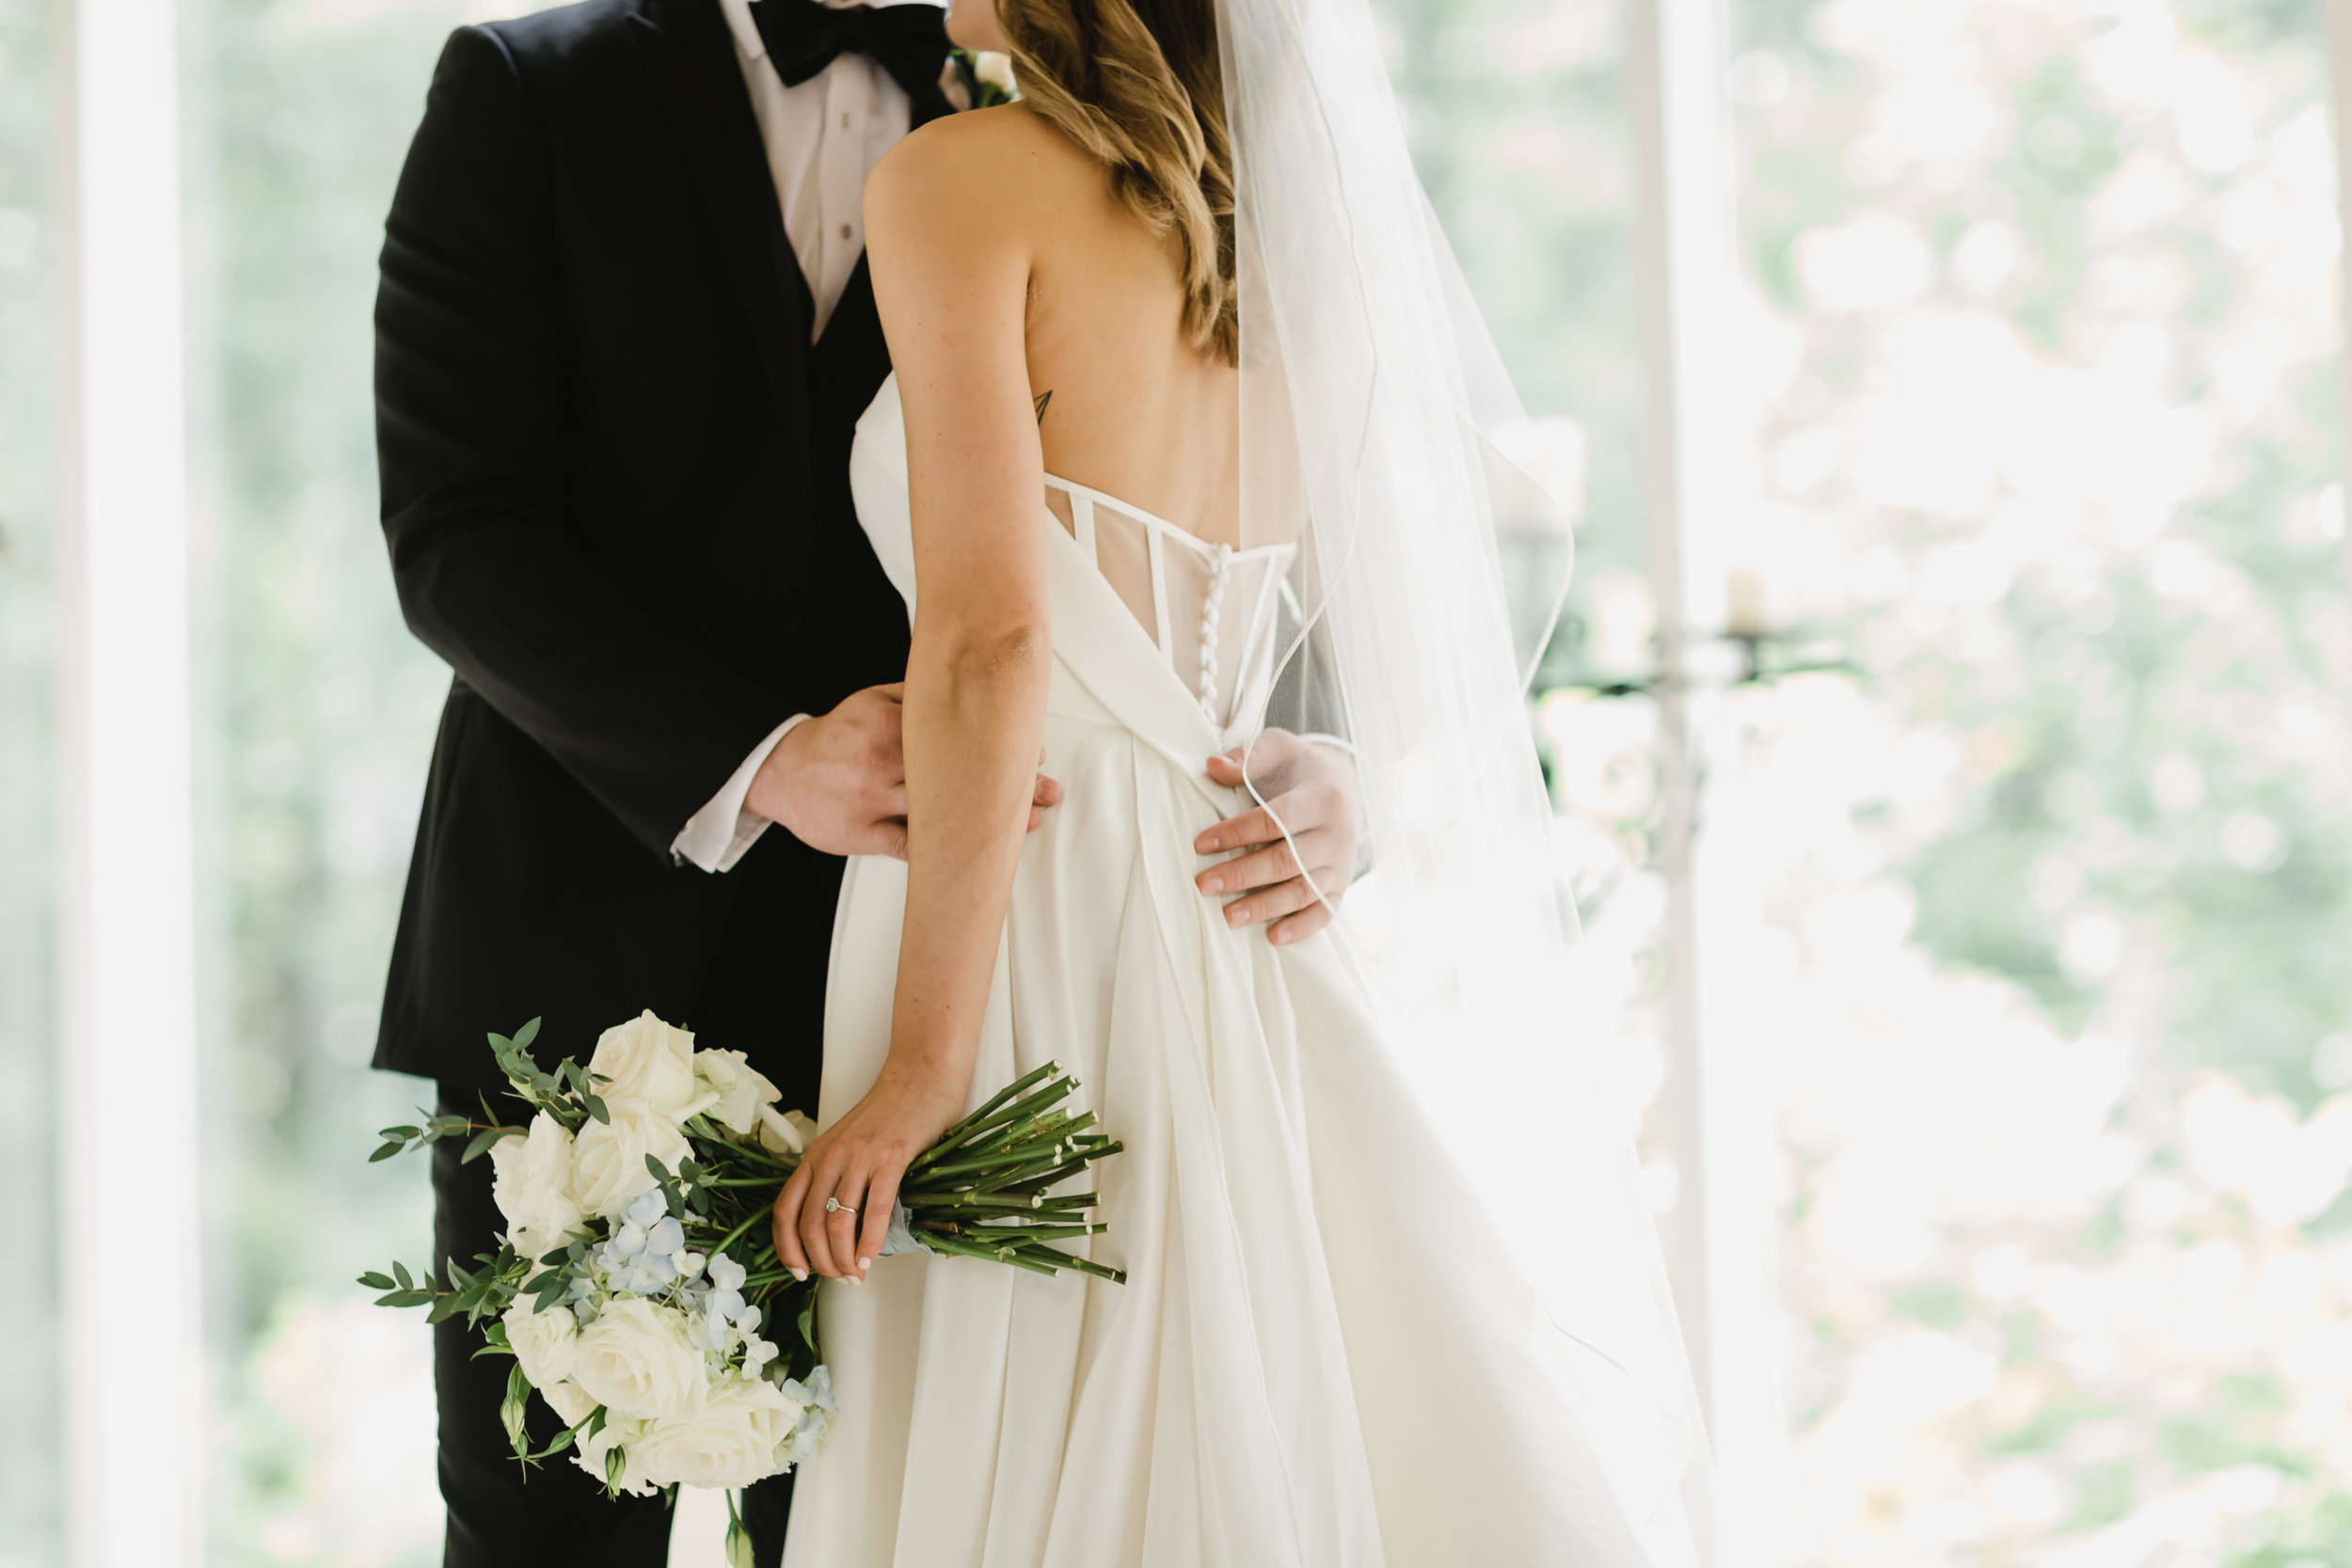 Gianna Keiko Atlanta NYC California Wedding Photographer_sneak peek-16.jpg